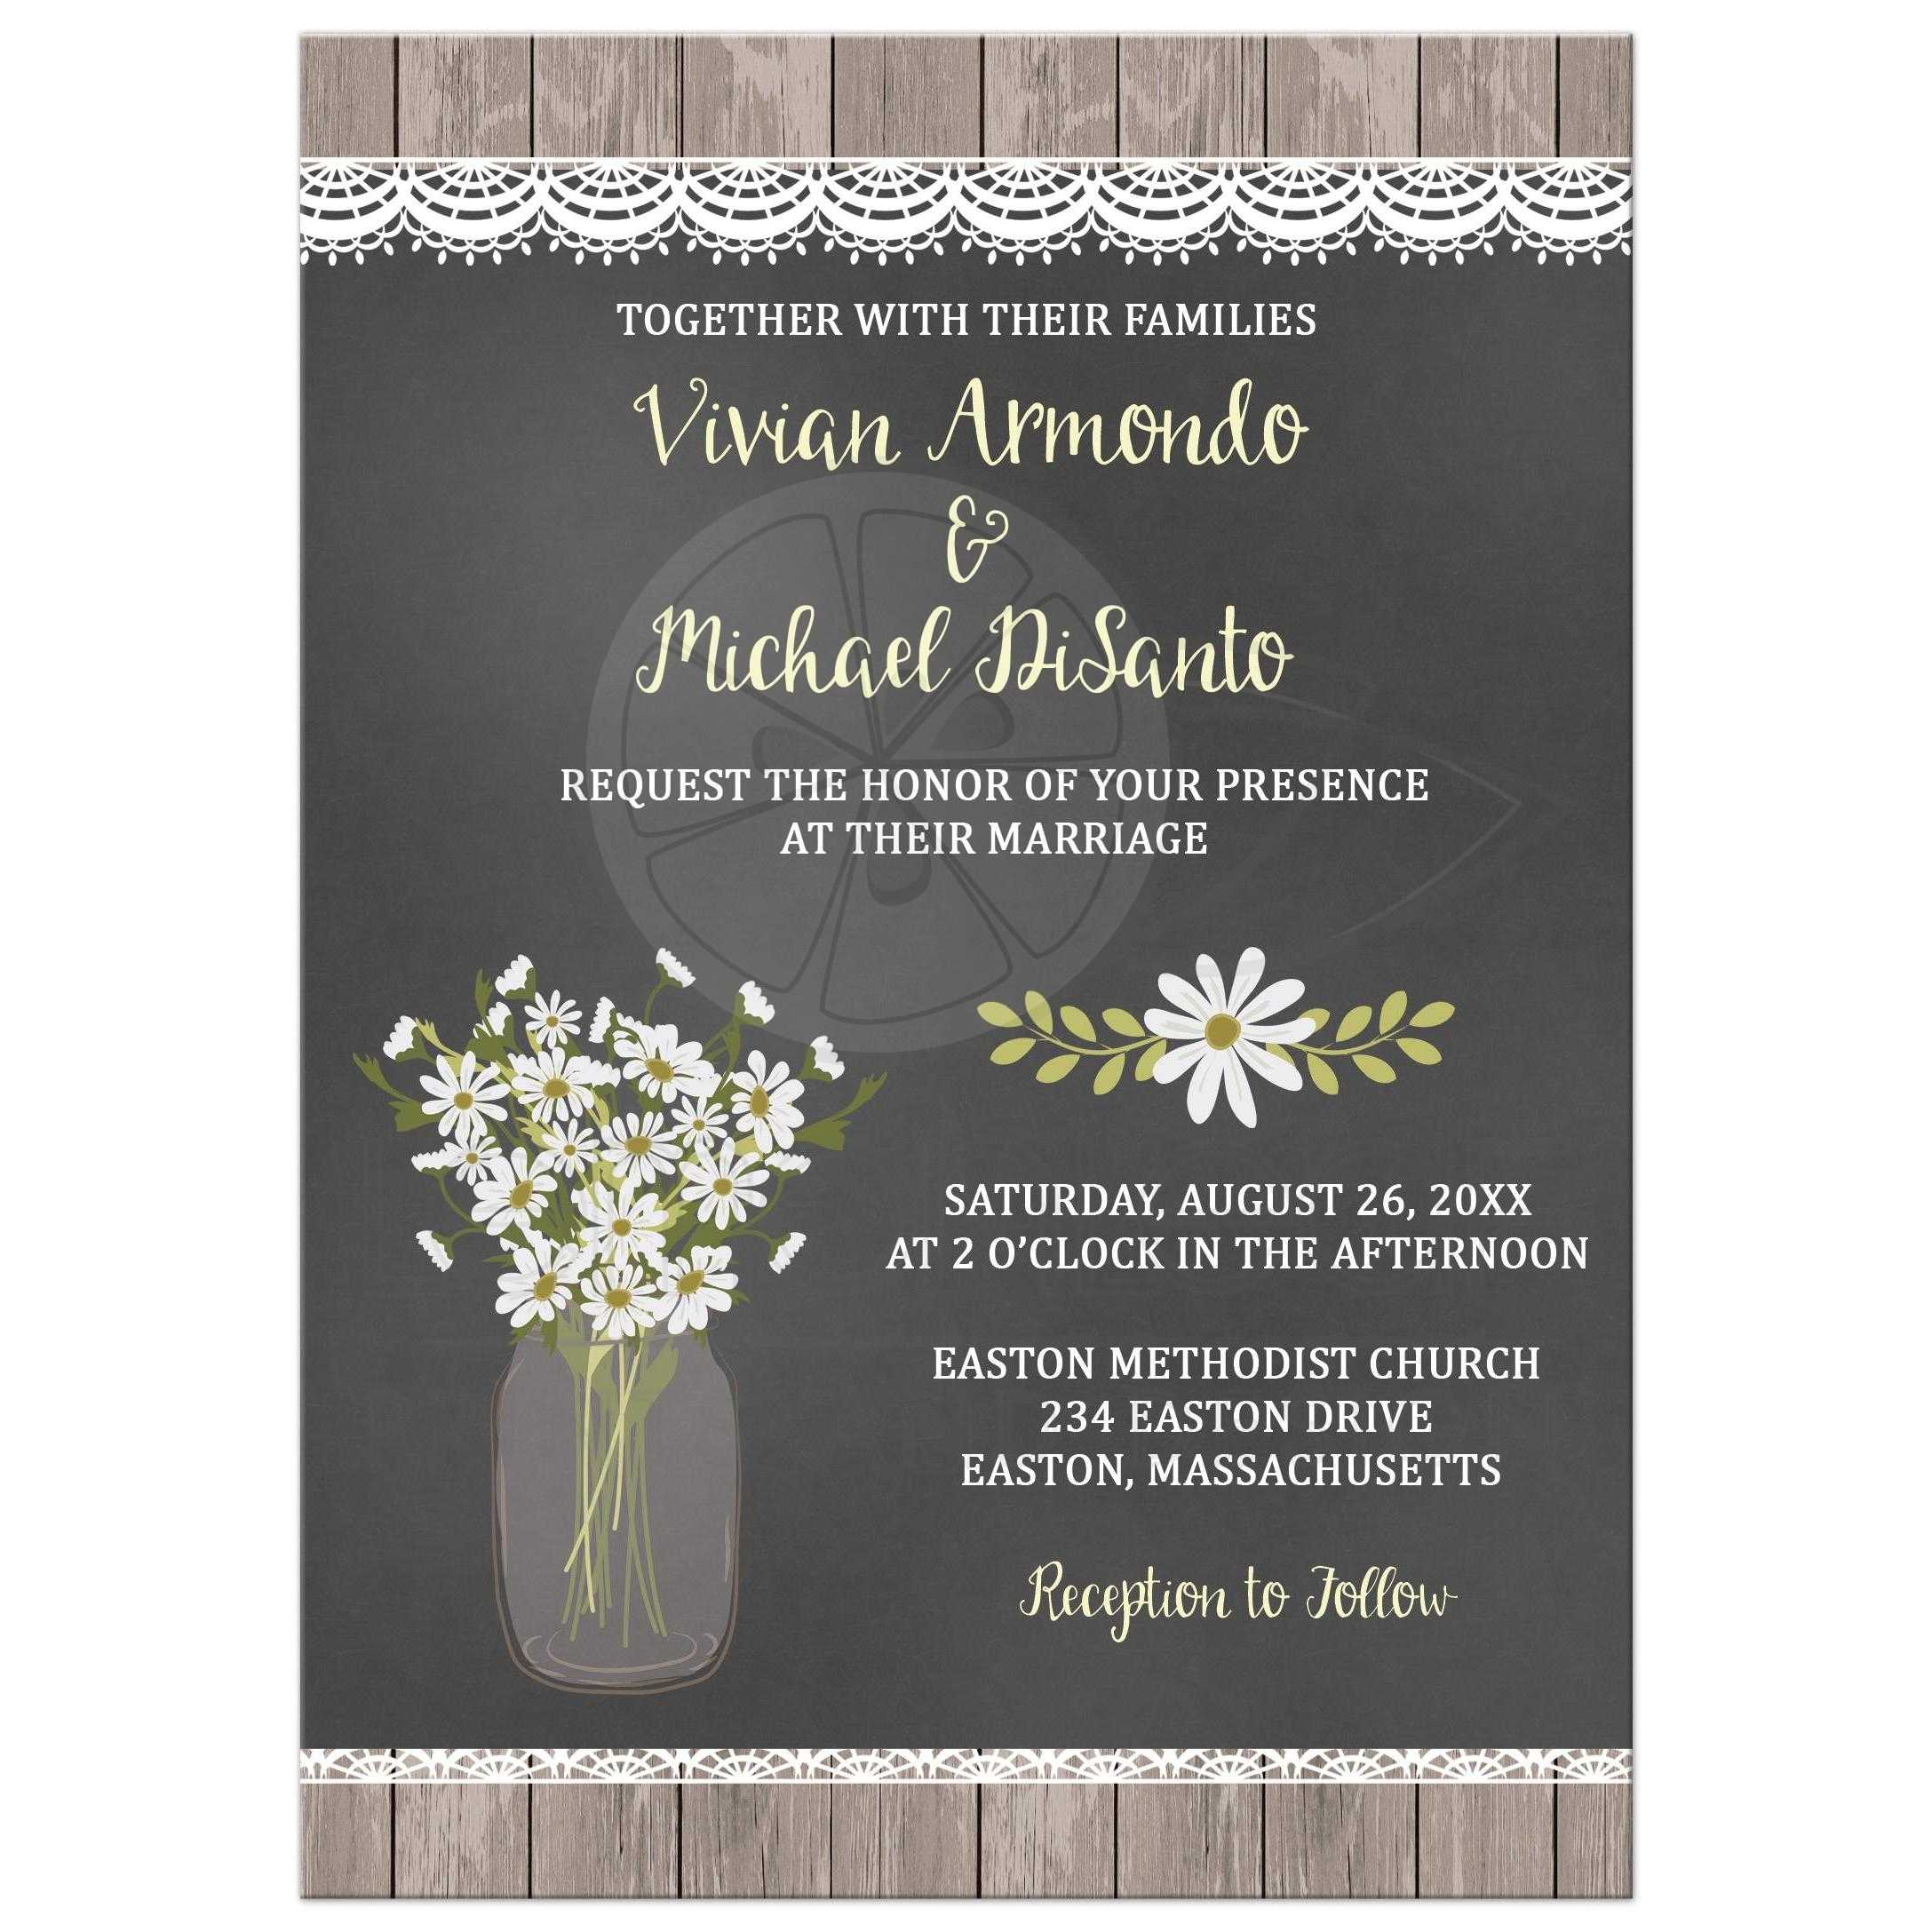 Mesmerizing Rsvp Rustic Daisy Mason Jar Chalkboard Wedding Invitation Rustic Weddinginvite Rustic Daisy Mason Jar Chalkboard Wedding Invitation Rusticweddinginvitation Rustic Wedding Invitations wedding invitation Rustic Wedding Invitations